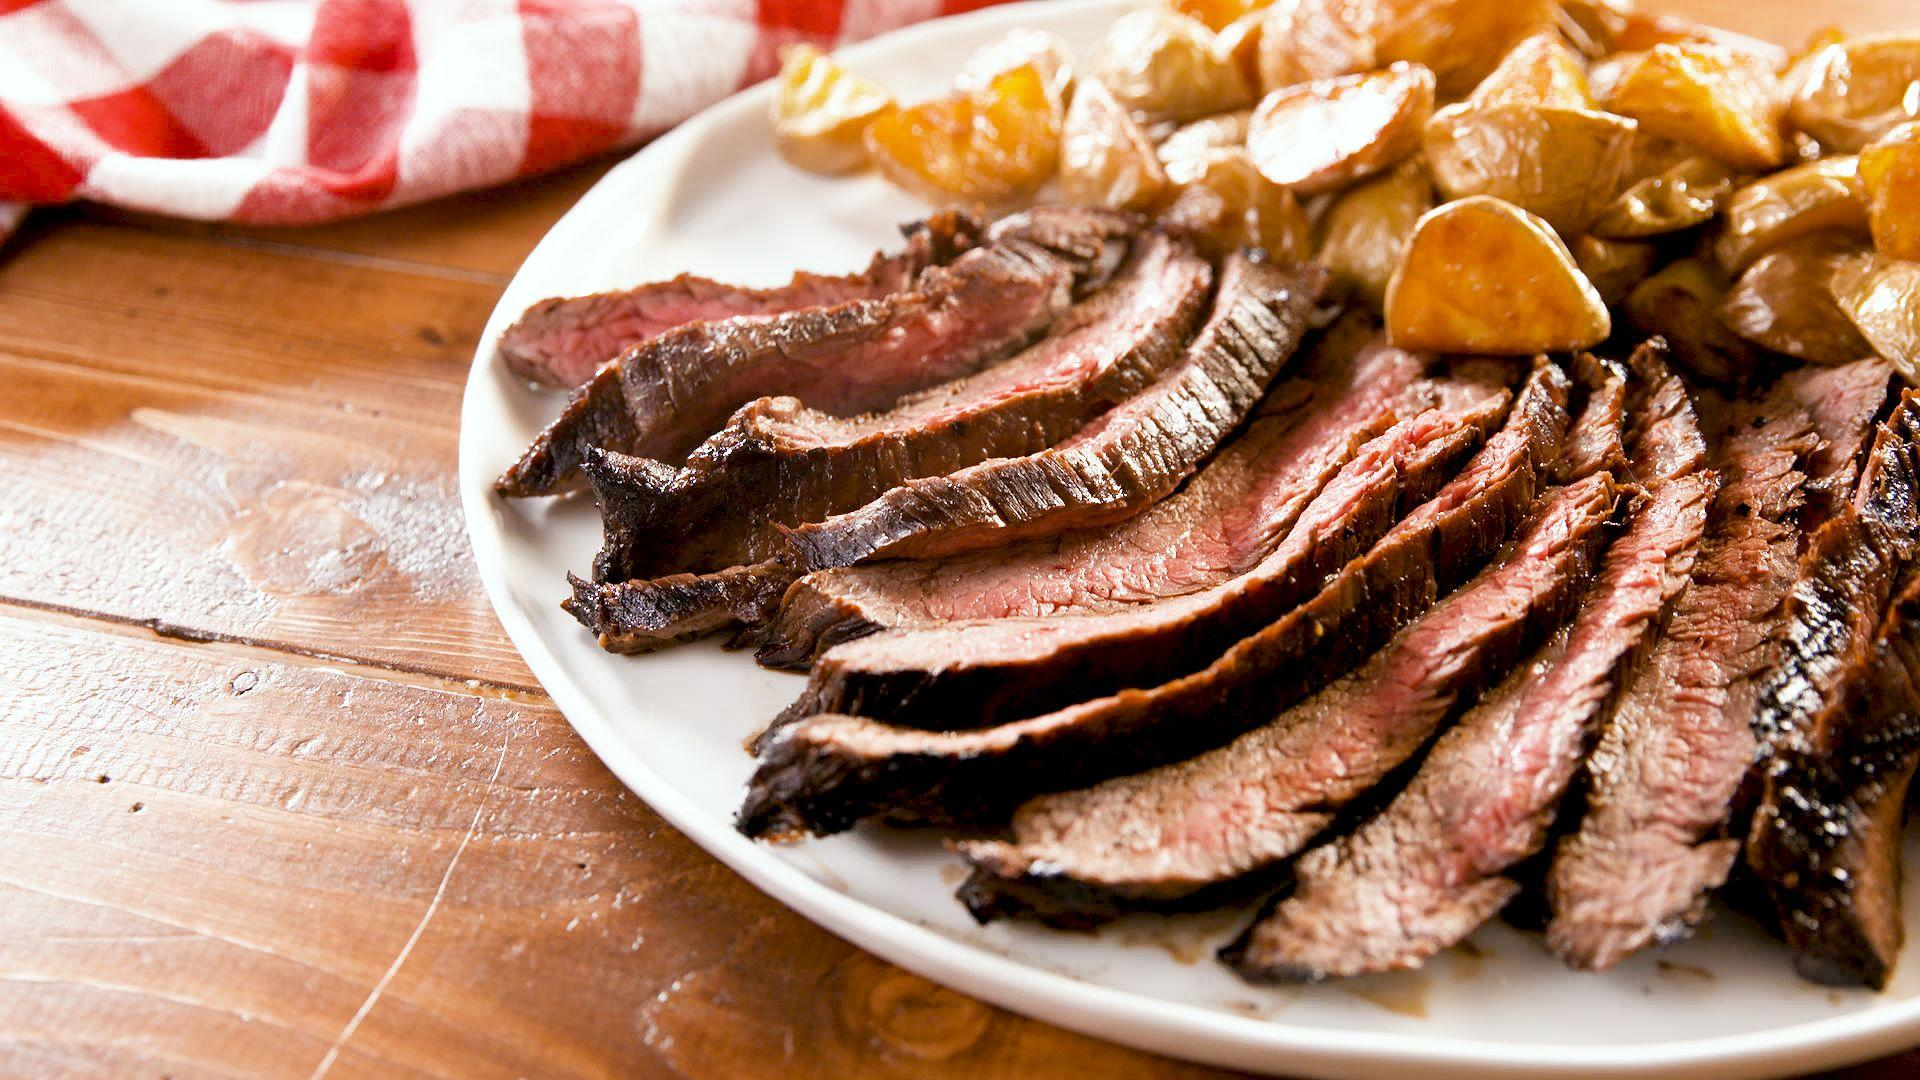 "<p>The best gift you can give Dad on Father's Day is a full stomach. Whether he's a meat and potatoes guy, wants something from the grill, or is more of a seafood fan, we've got you covered. Need more ways to impress your pop? Try these <a href=""http://www.delish.com/holiday-recipes/g3385/fathers-day-cakes/"" rel=""nofollow noopener"" target=""_blank"" data-ylk=""slk:Father's Day cakes"" class=""link rapid-noclick-resp"">Father's Day cakes</a> and <a href=""http://www.delish.com/holiday-recipes/g2473/fathers-day-brunch-recipes/"" rel=""nofollow noopener"" target=""_blank"" data-ylk=""slk:brunch recipes"" class=""link rapid-noclick-resp"">brunch recipes</a>.</p>"